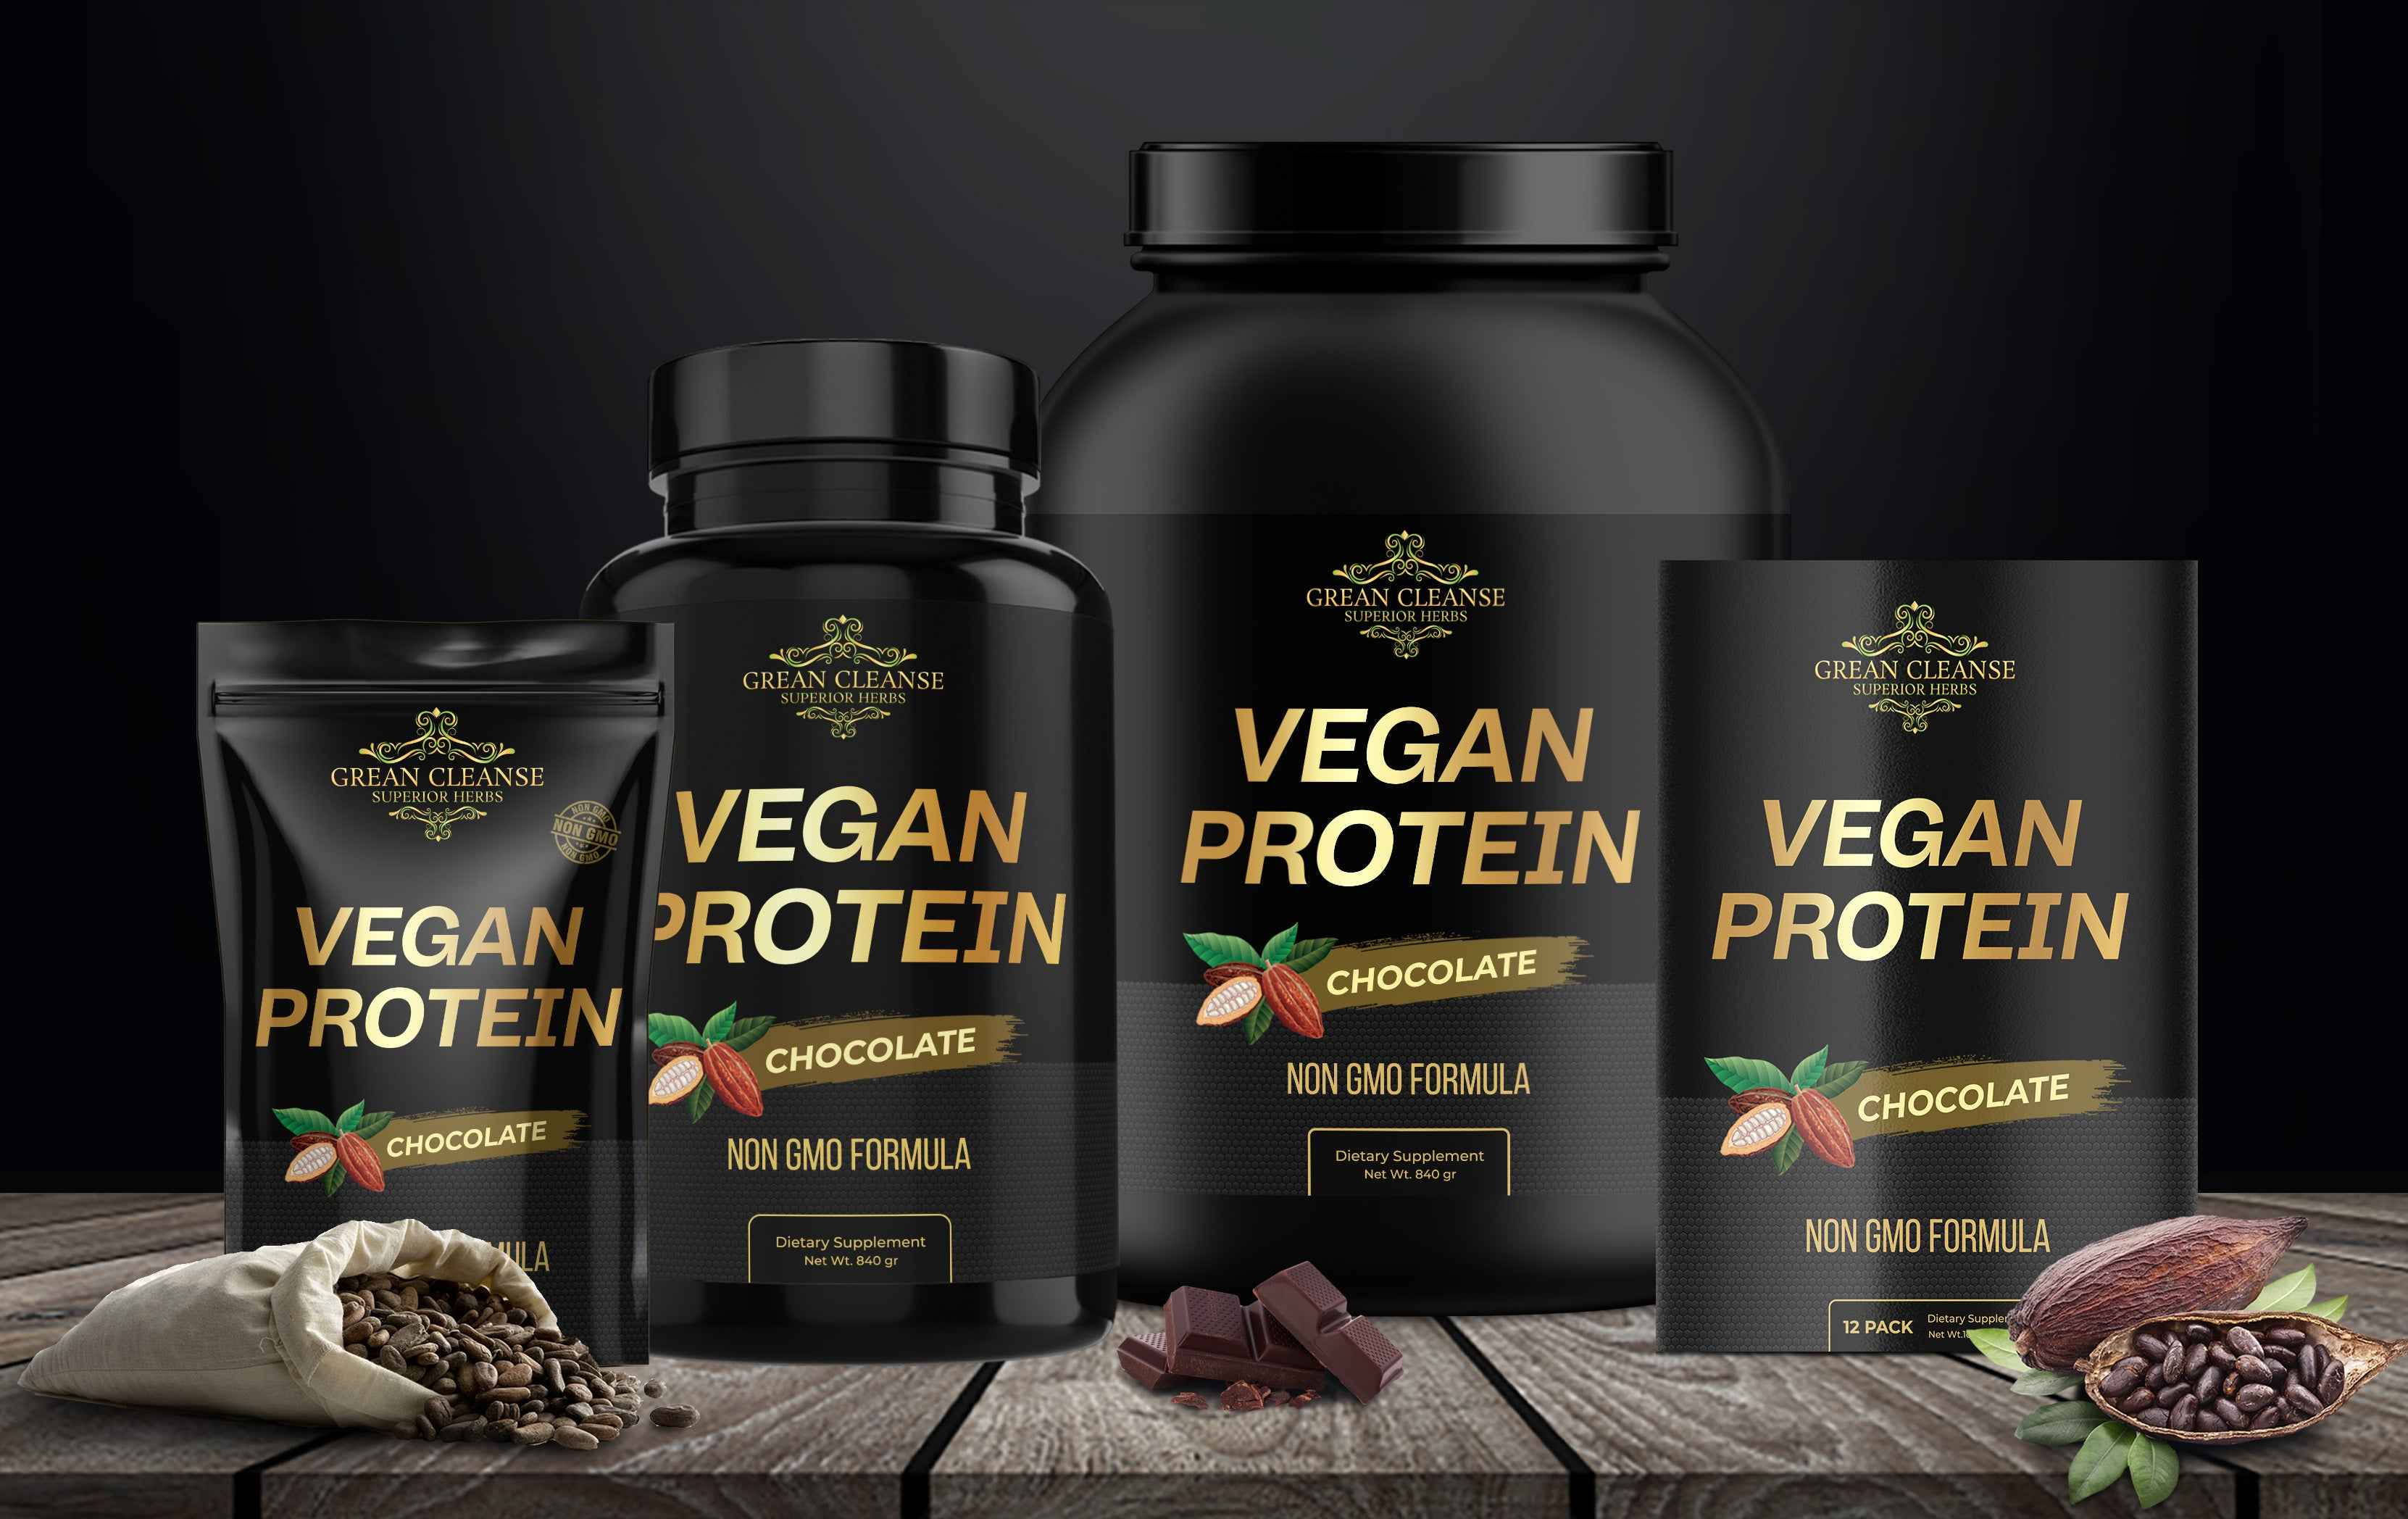 Grean Cleanse Vegan Protein - Chocolate